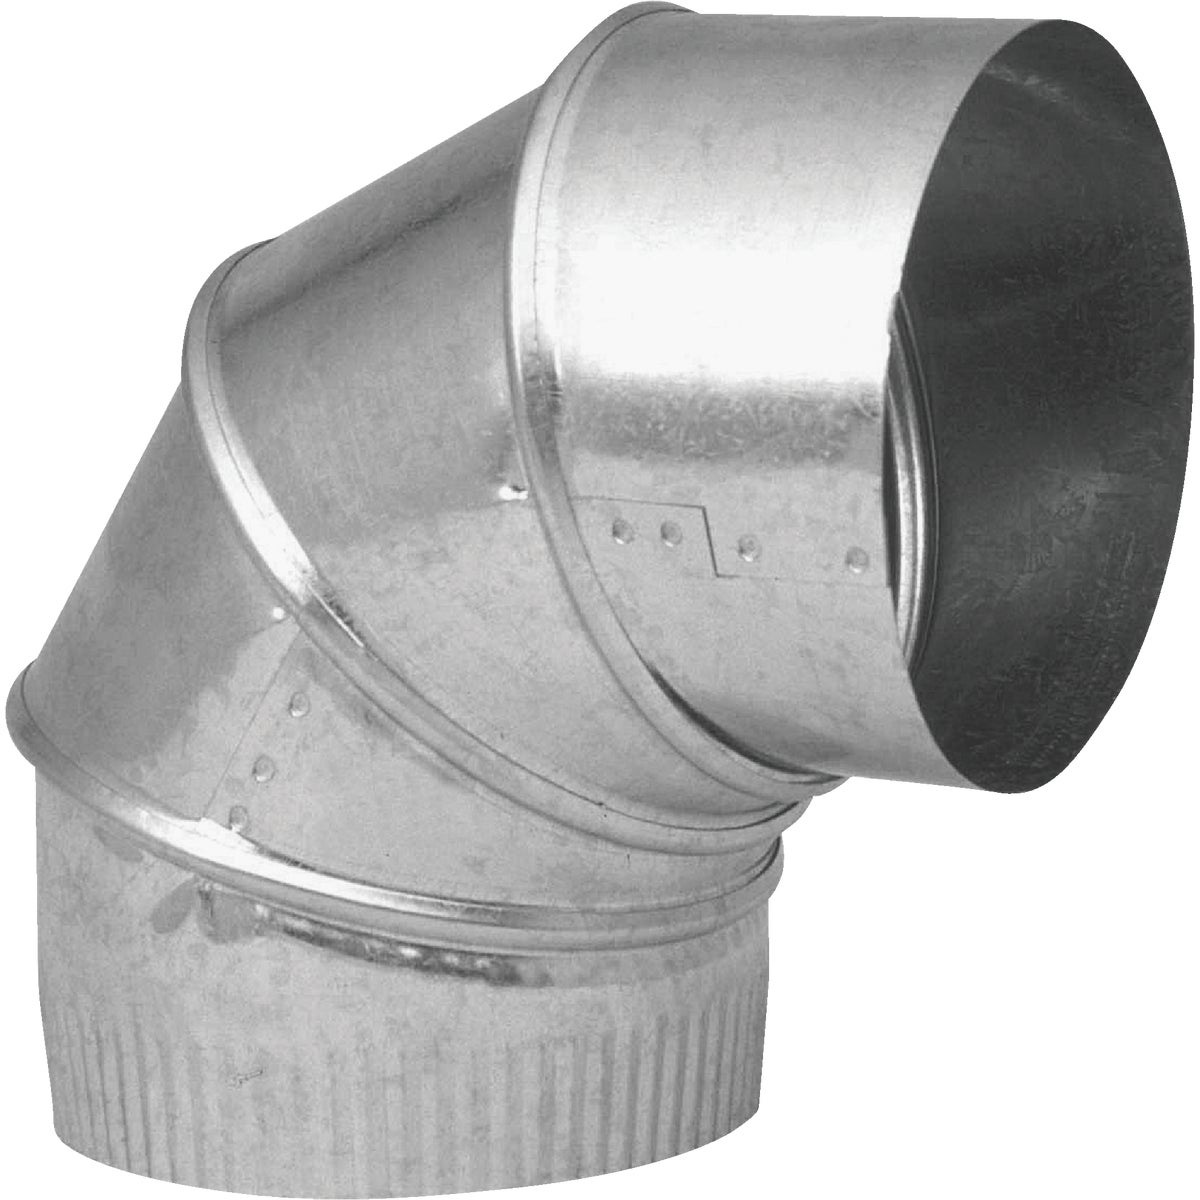 "9"" 24GA GALV ADJ ELBOW - GV0304-C by Imperial Mfg Group"